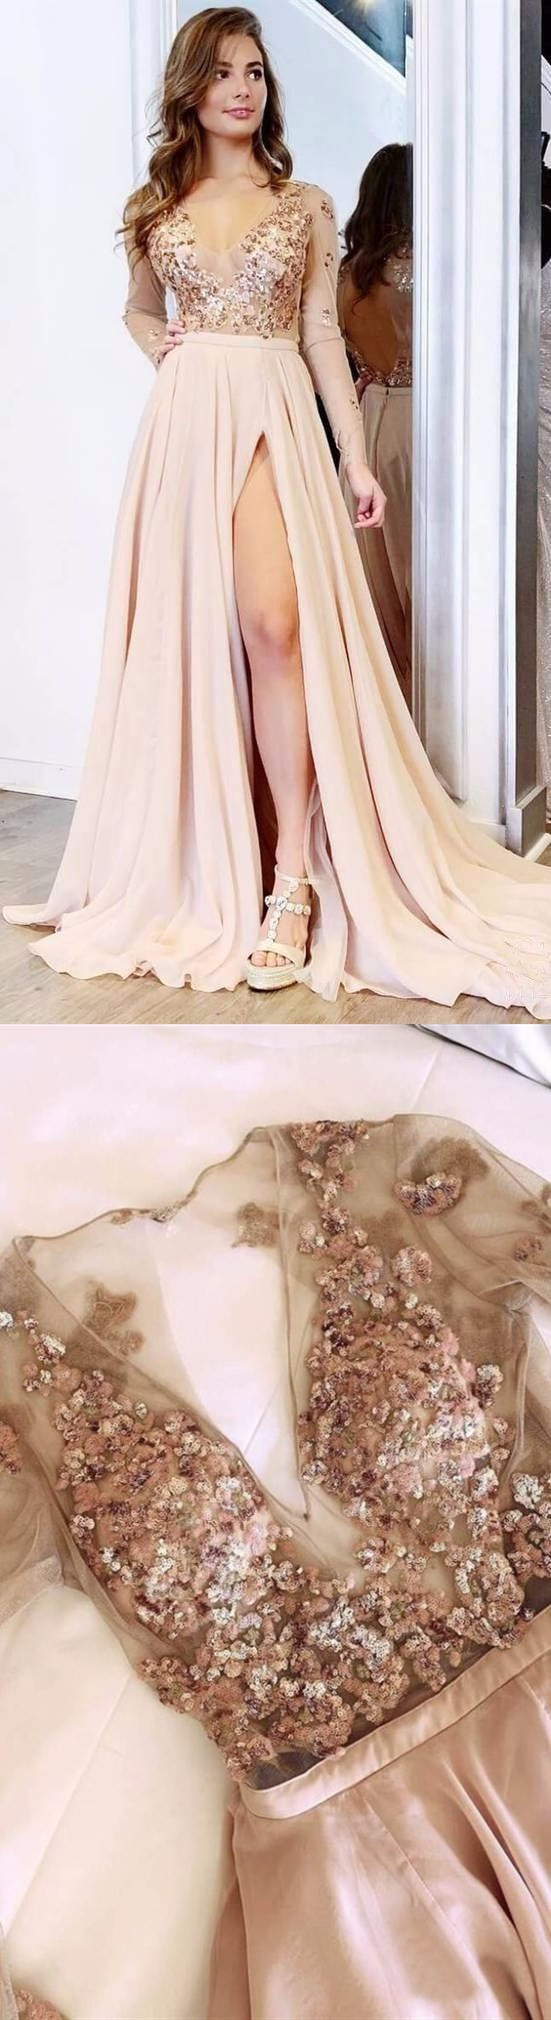 A Line V neck Long Sleeves Light Champagne Prom Dress With Appliques M8191